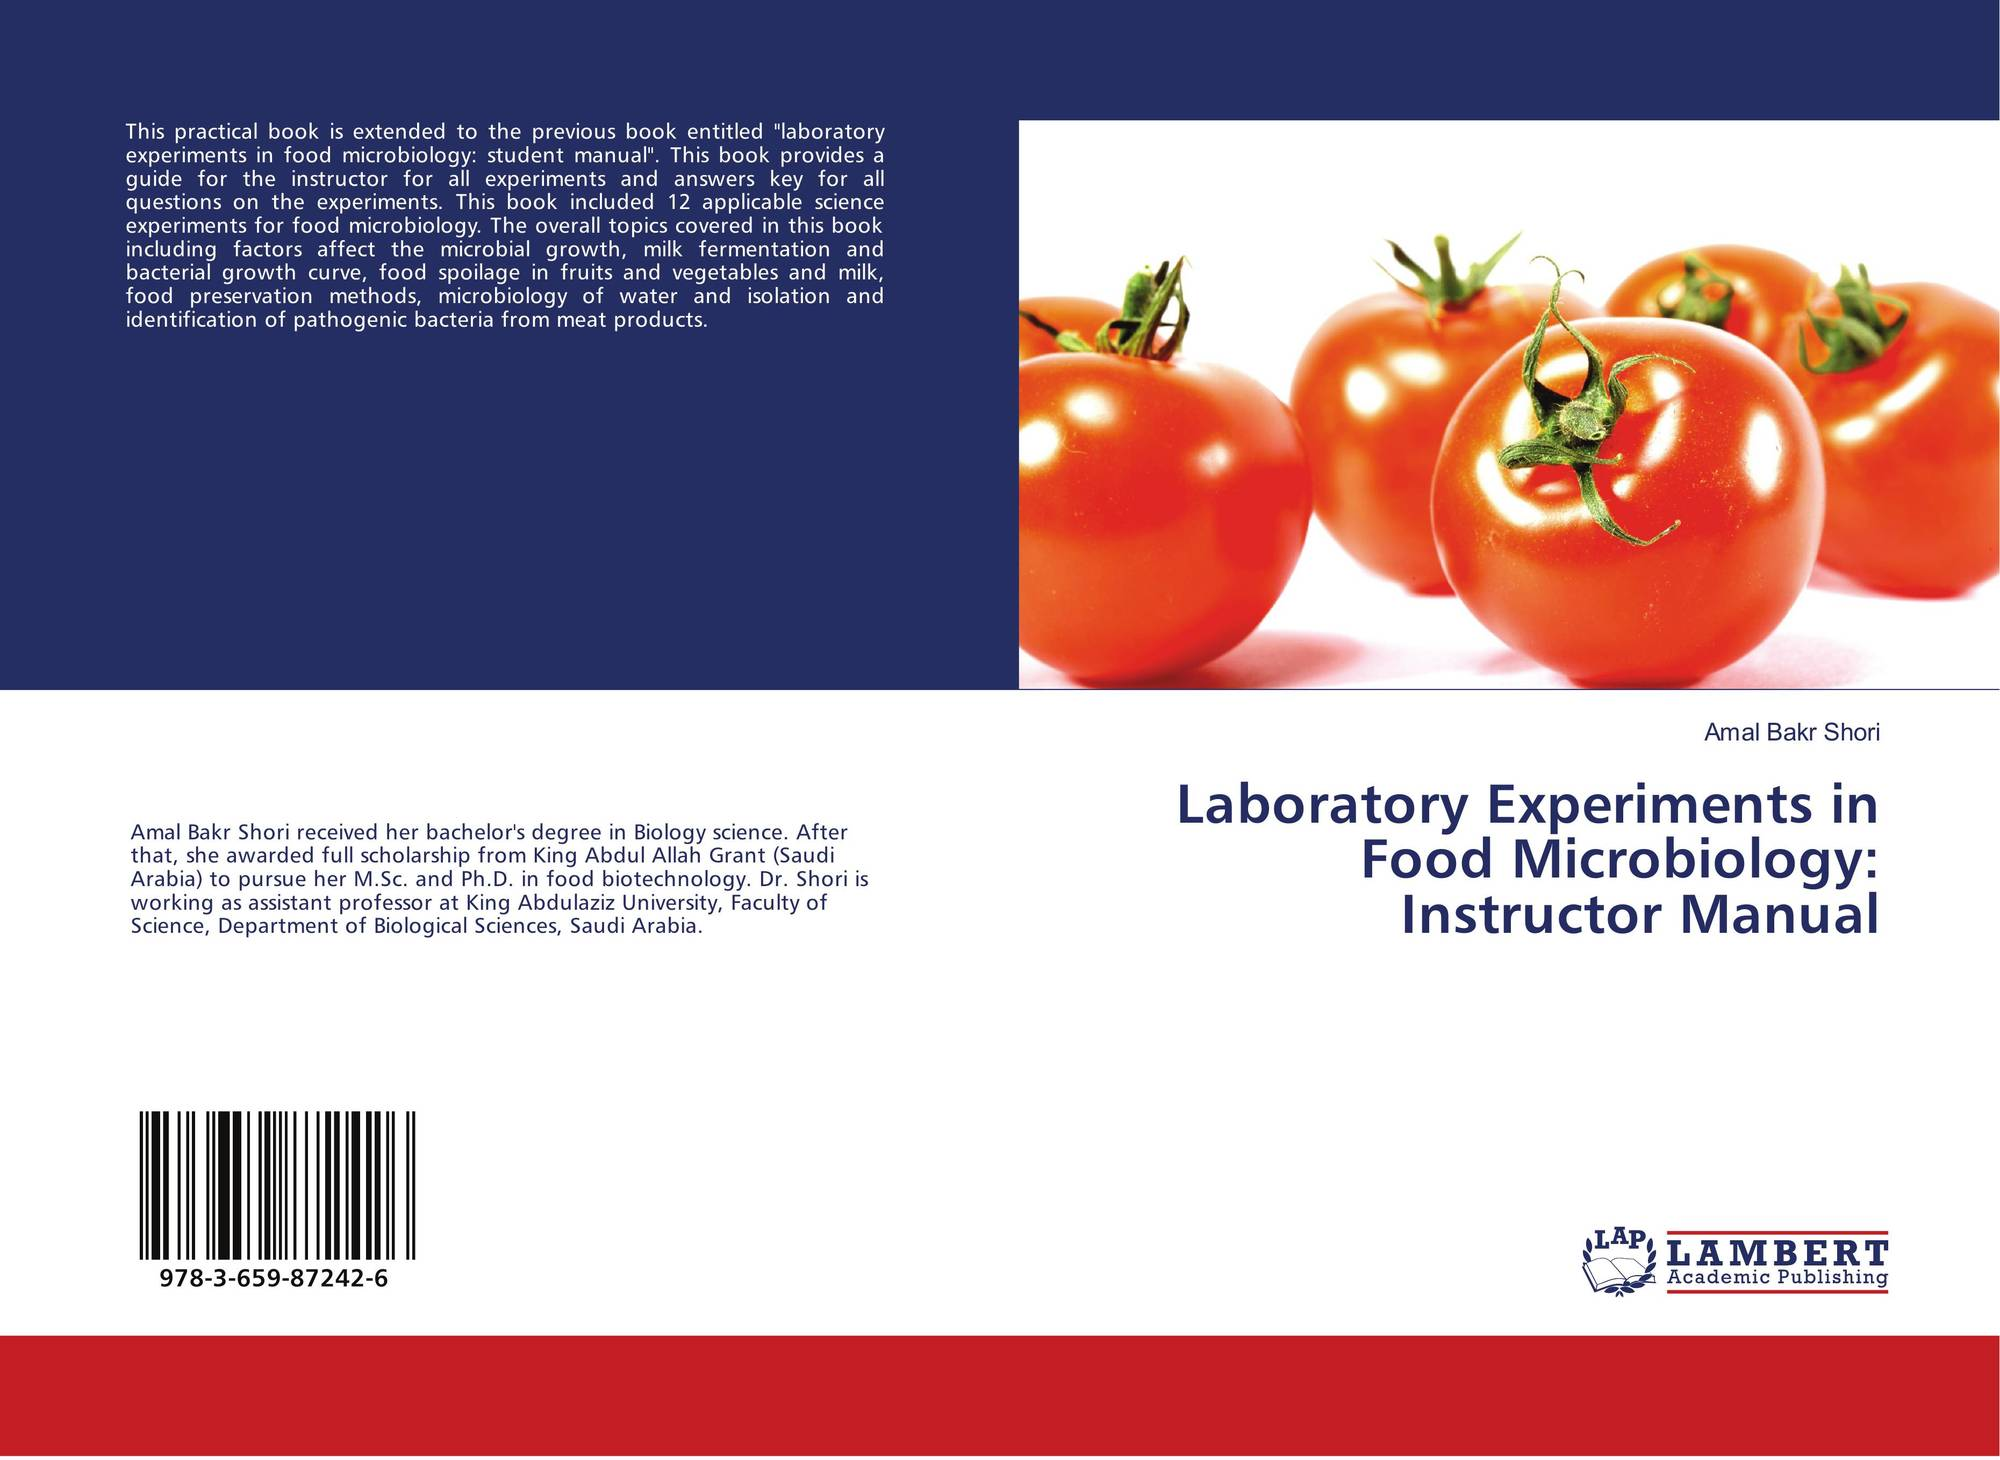 Bookcover of Laboratory Experiments in Food Microbiology: Instructor Manual.  9783659872426